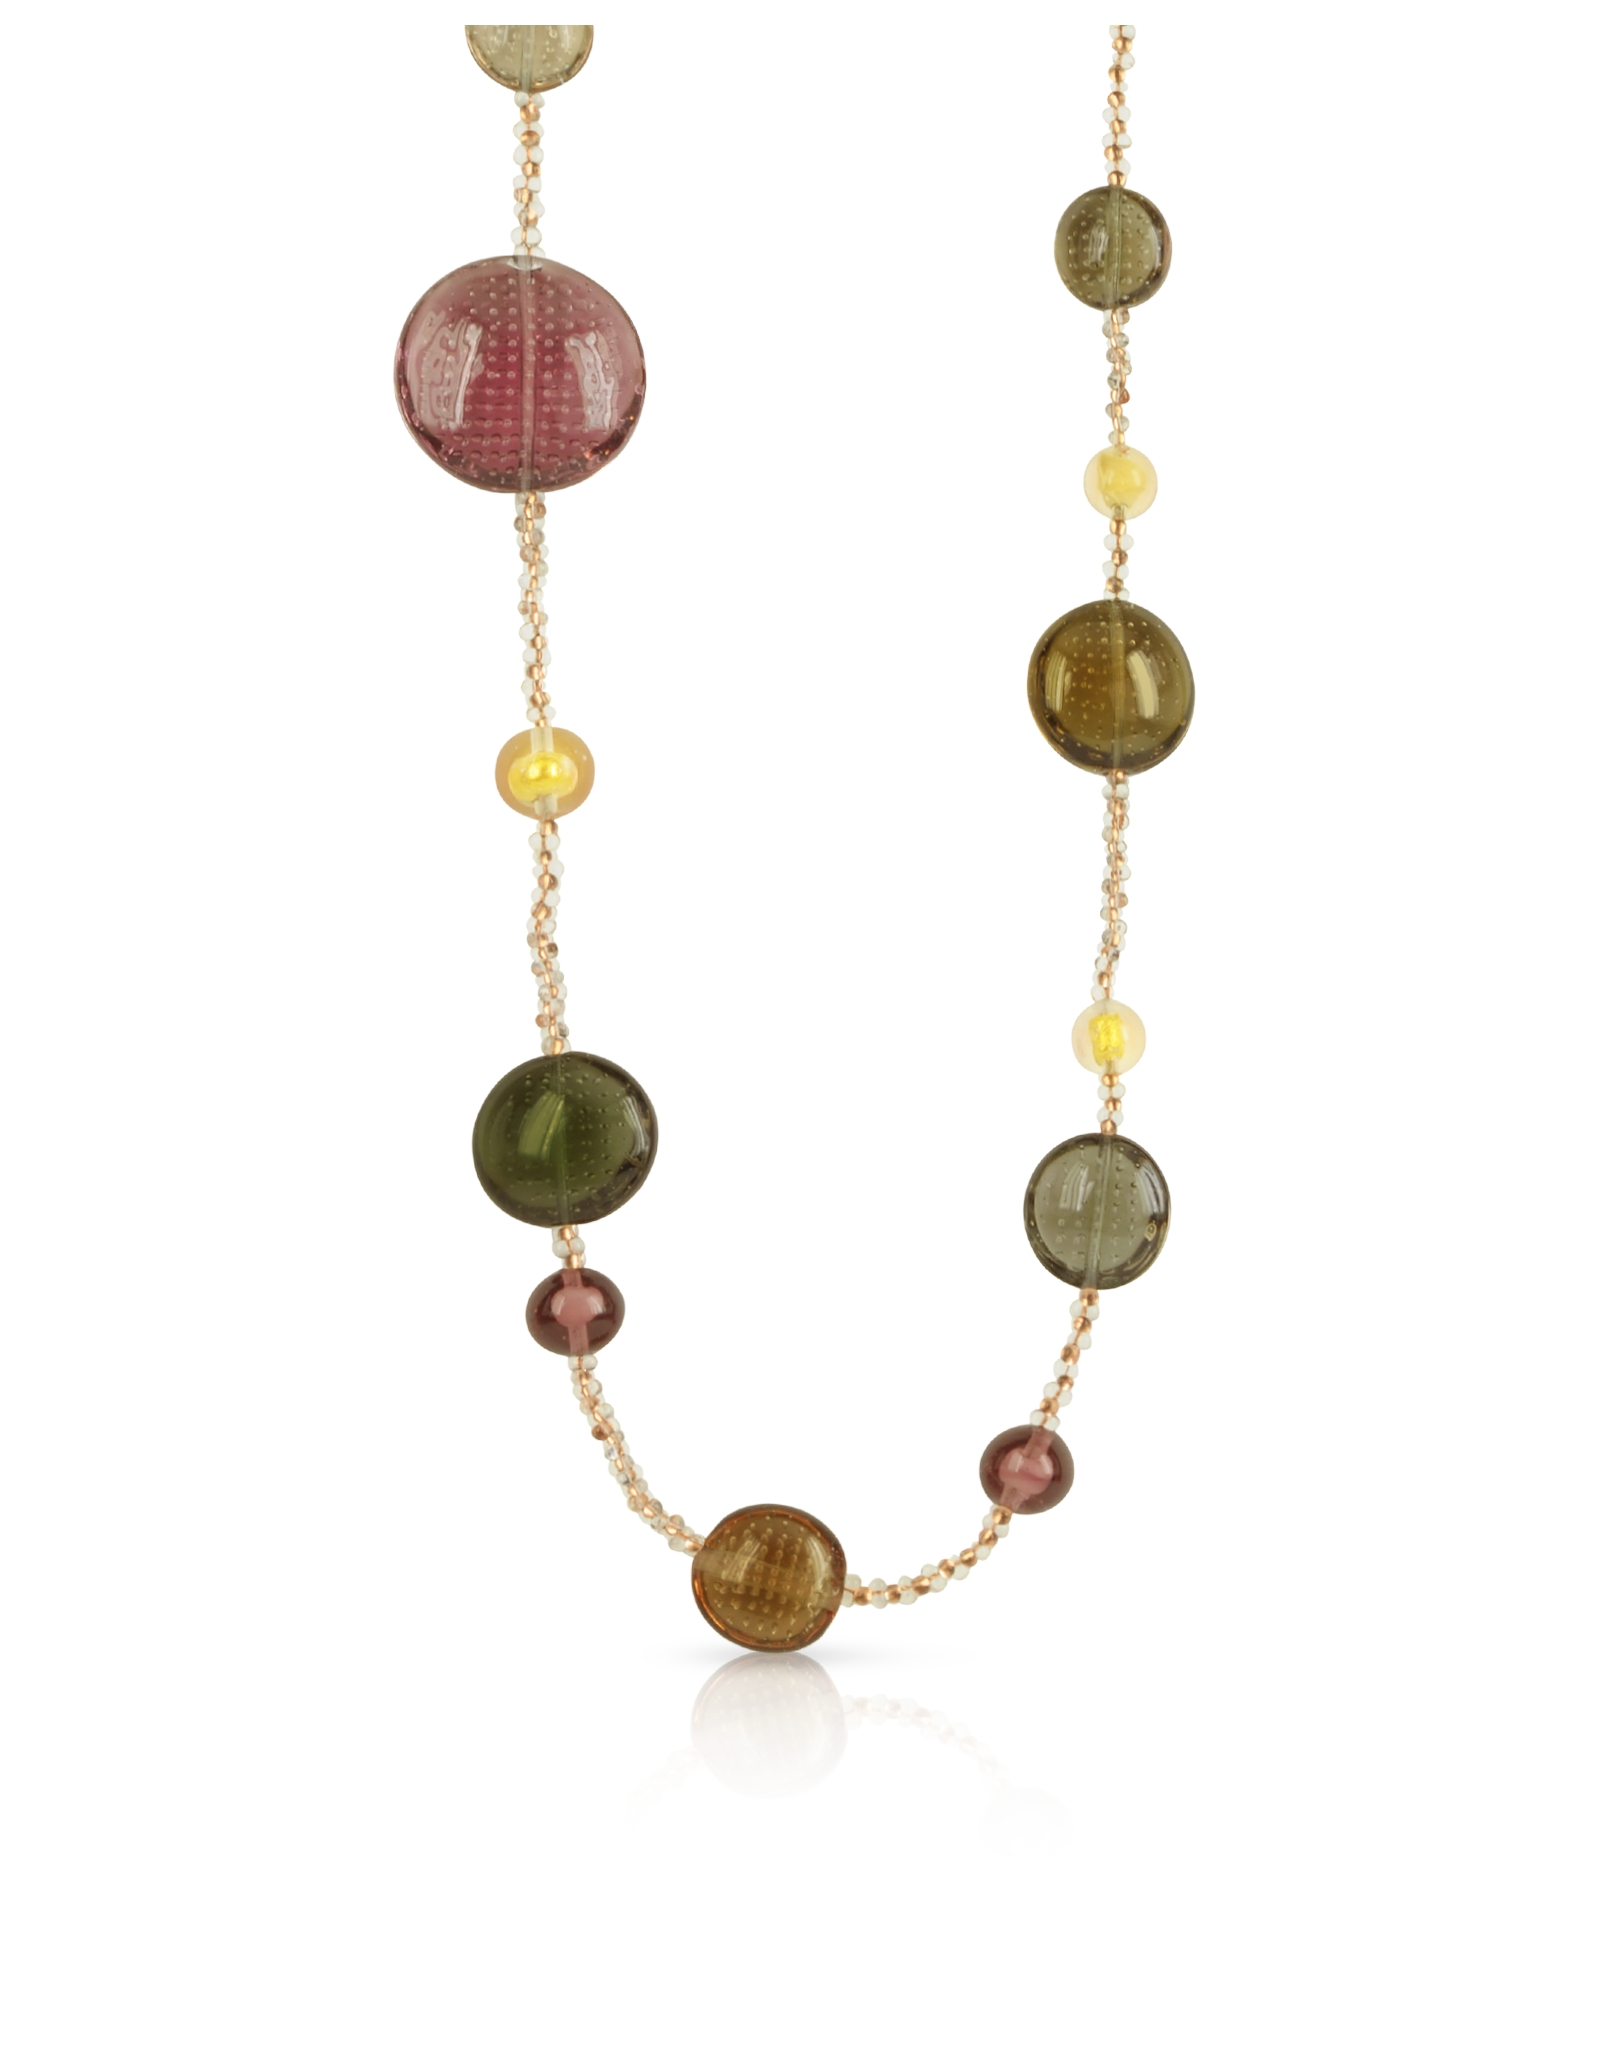 Antica murrina new york future murano glass long necklace for The future is female jewelry